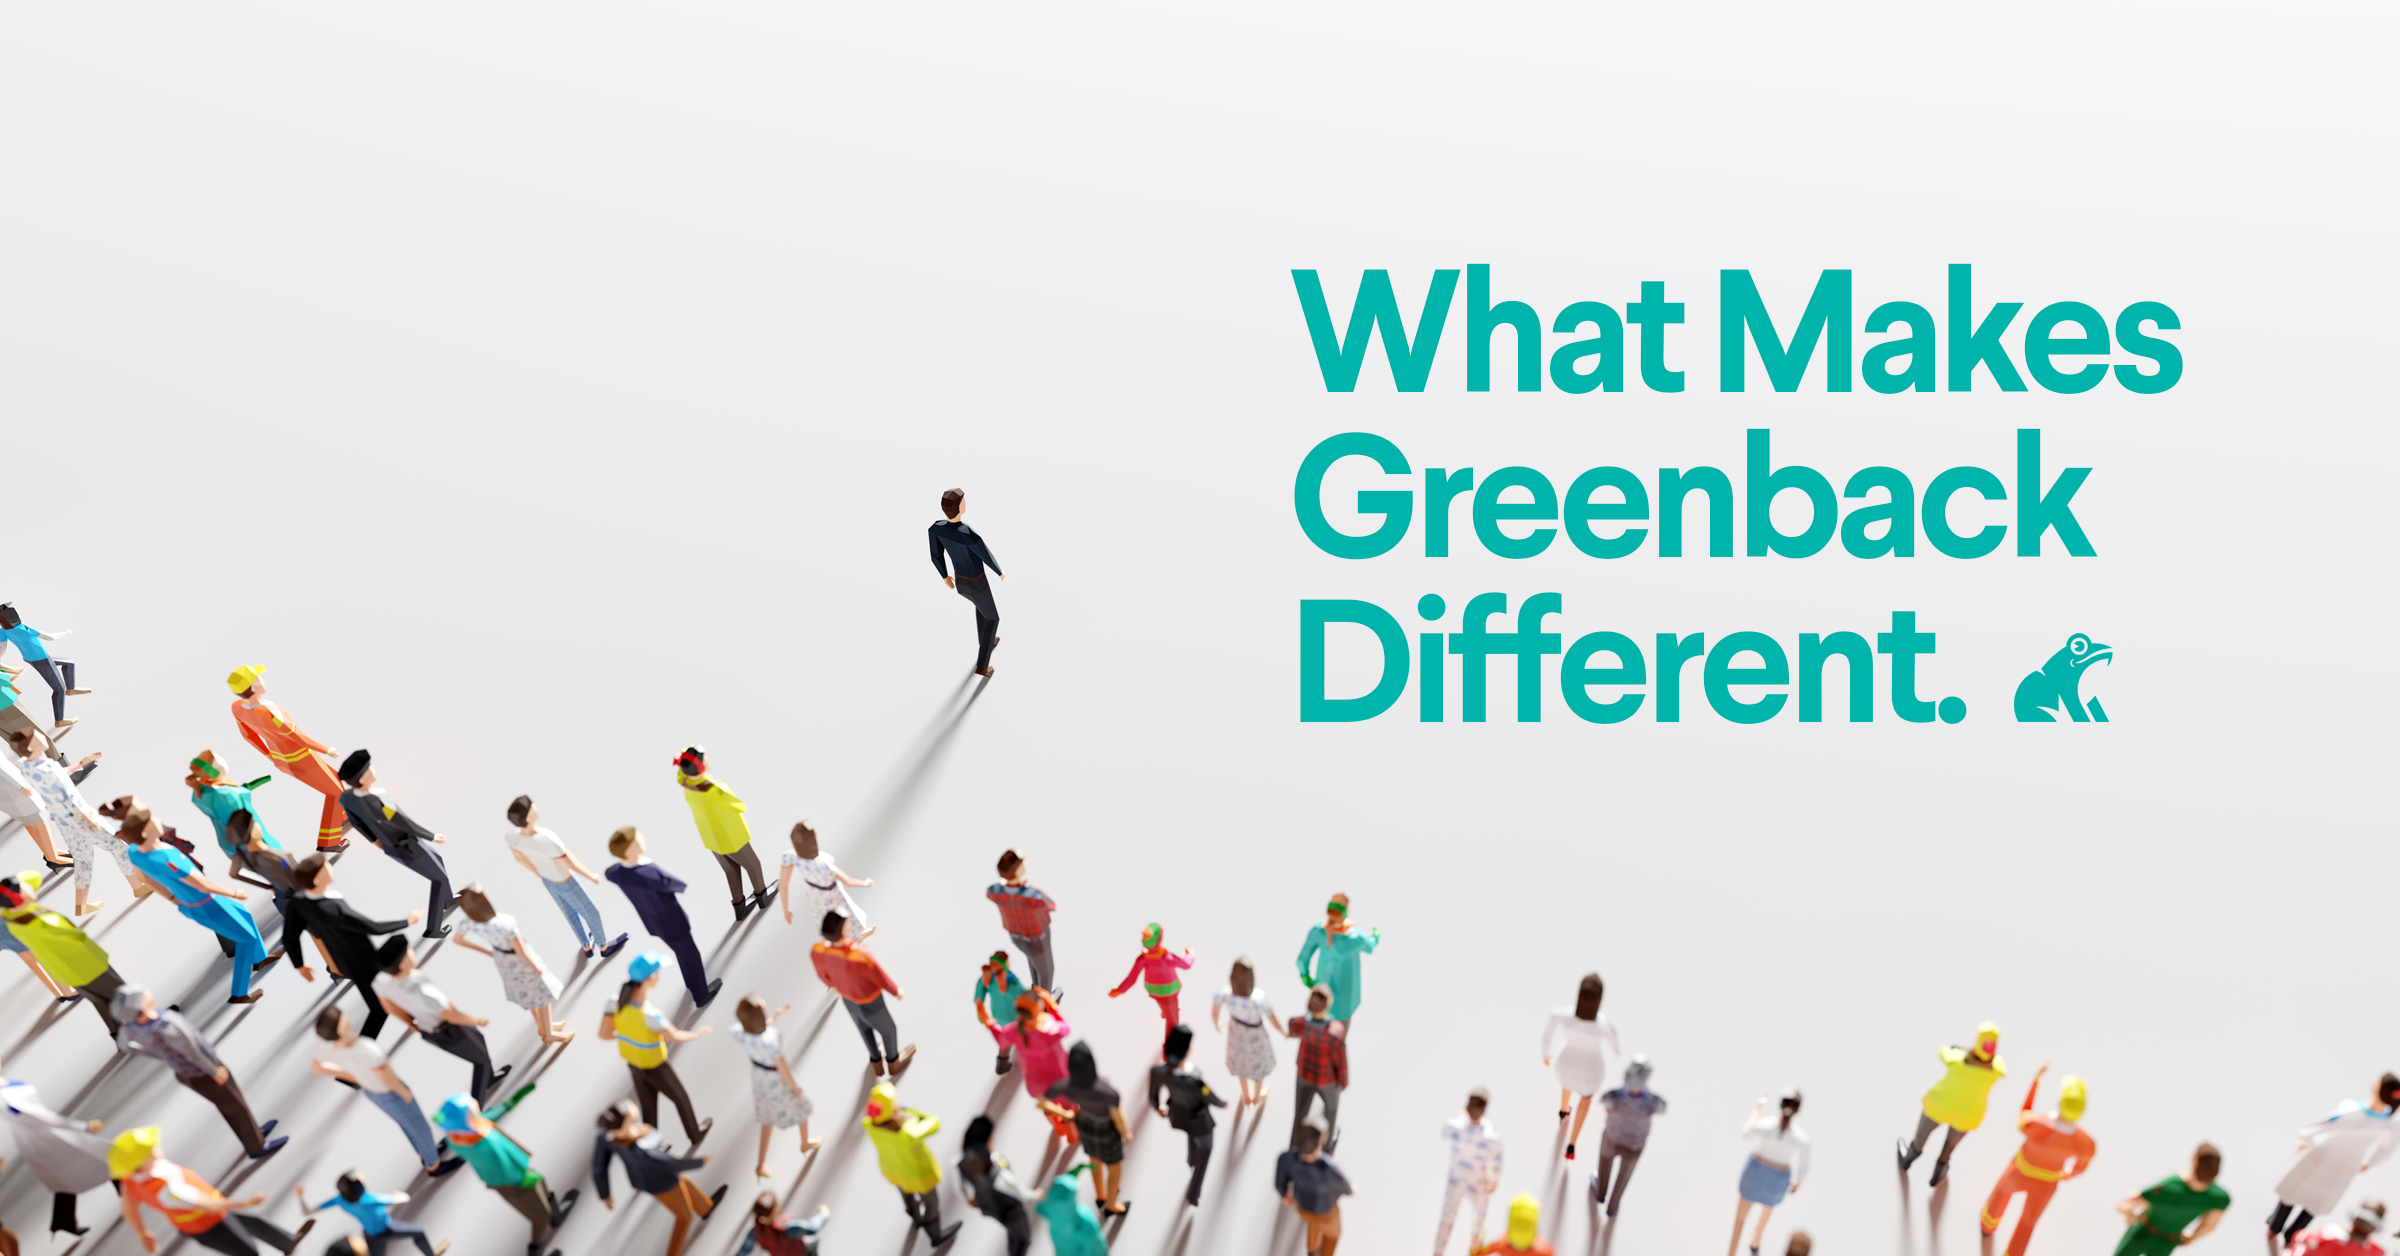 What Makes Greenback Different